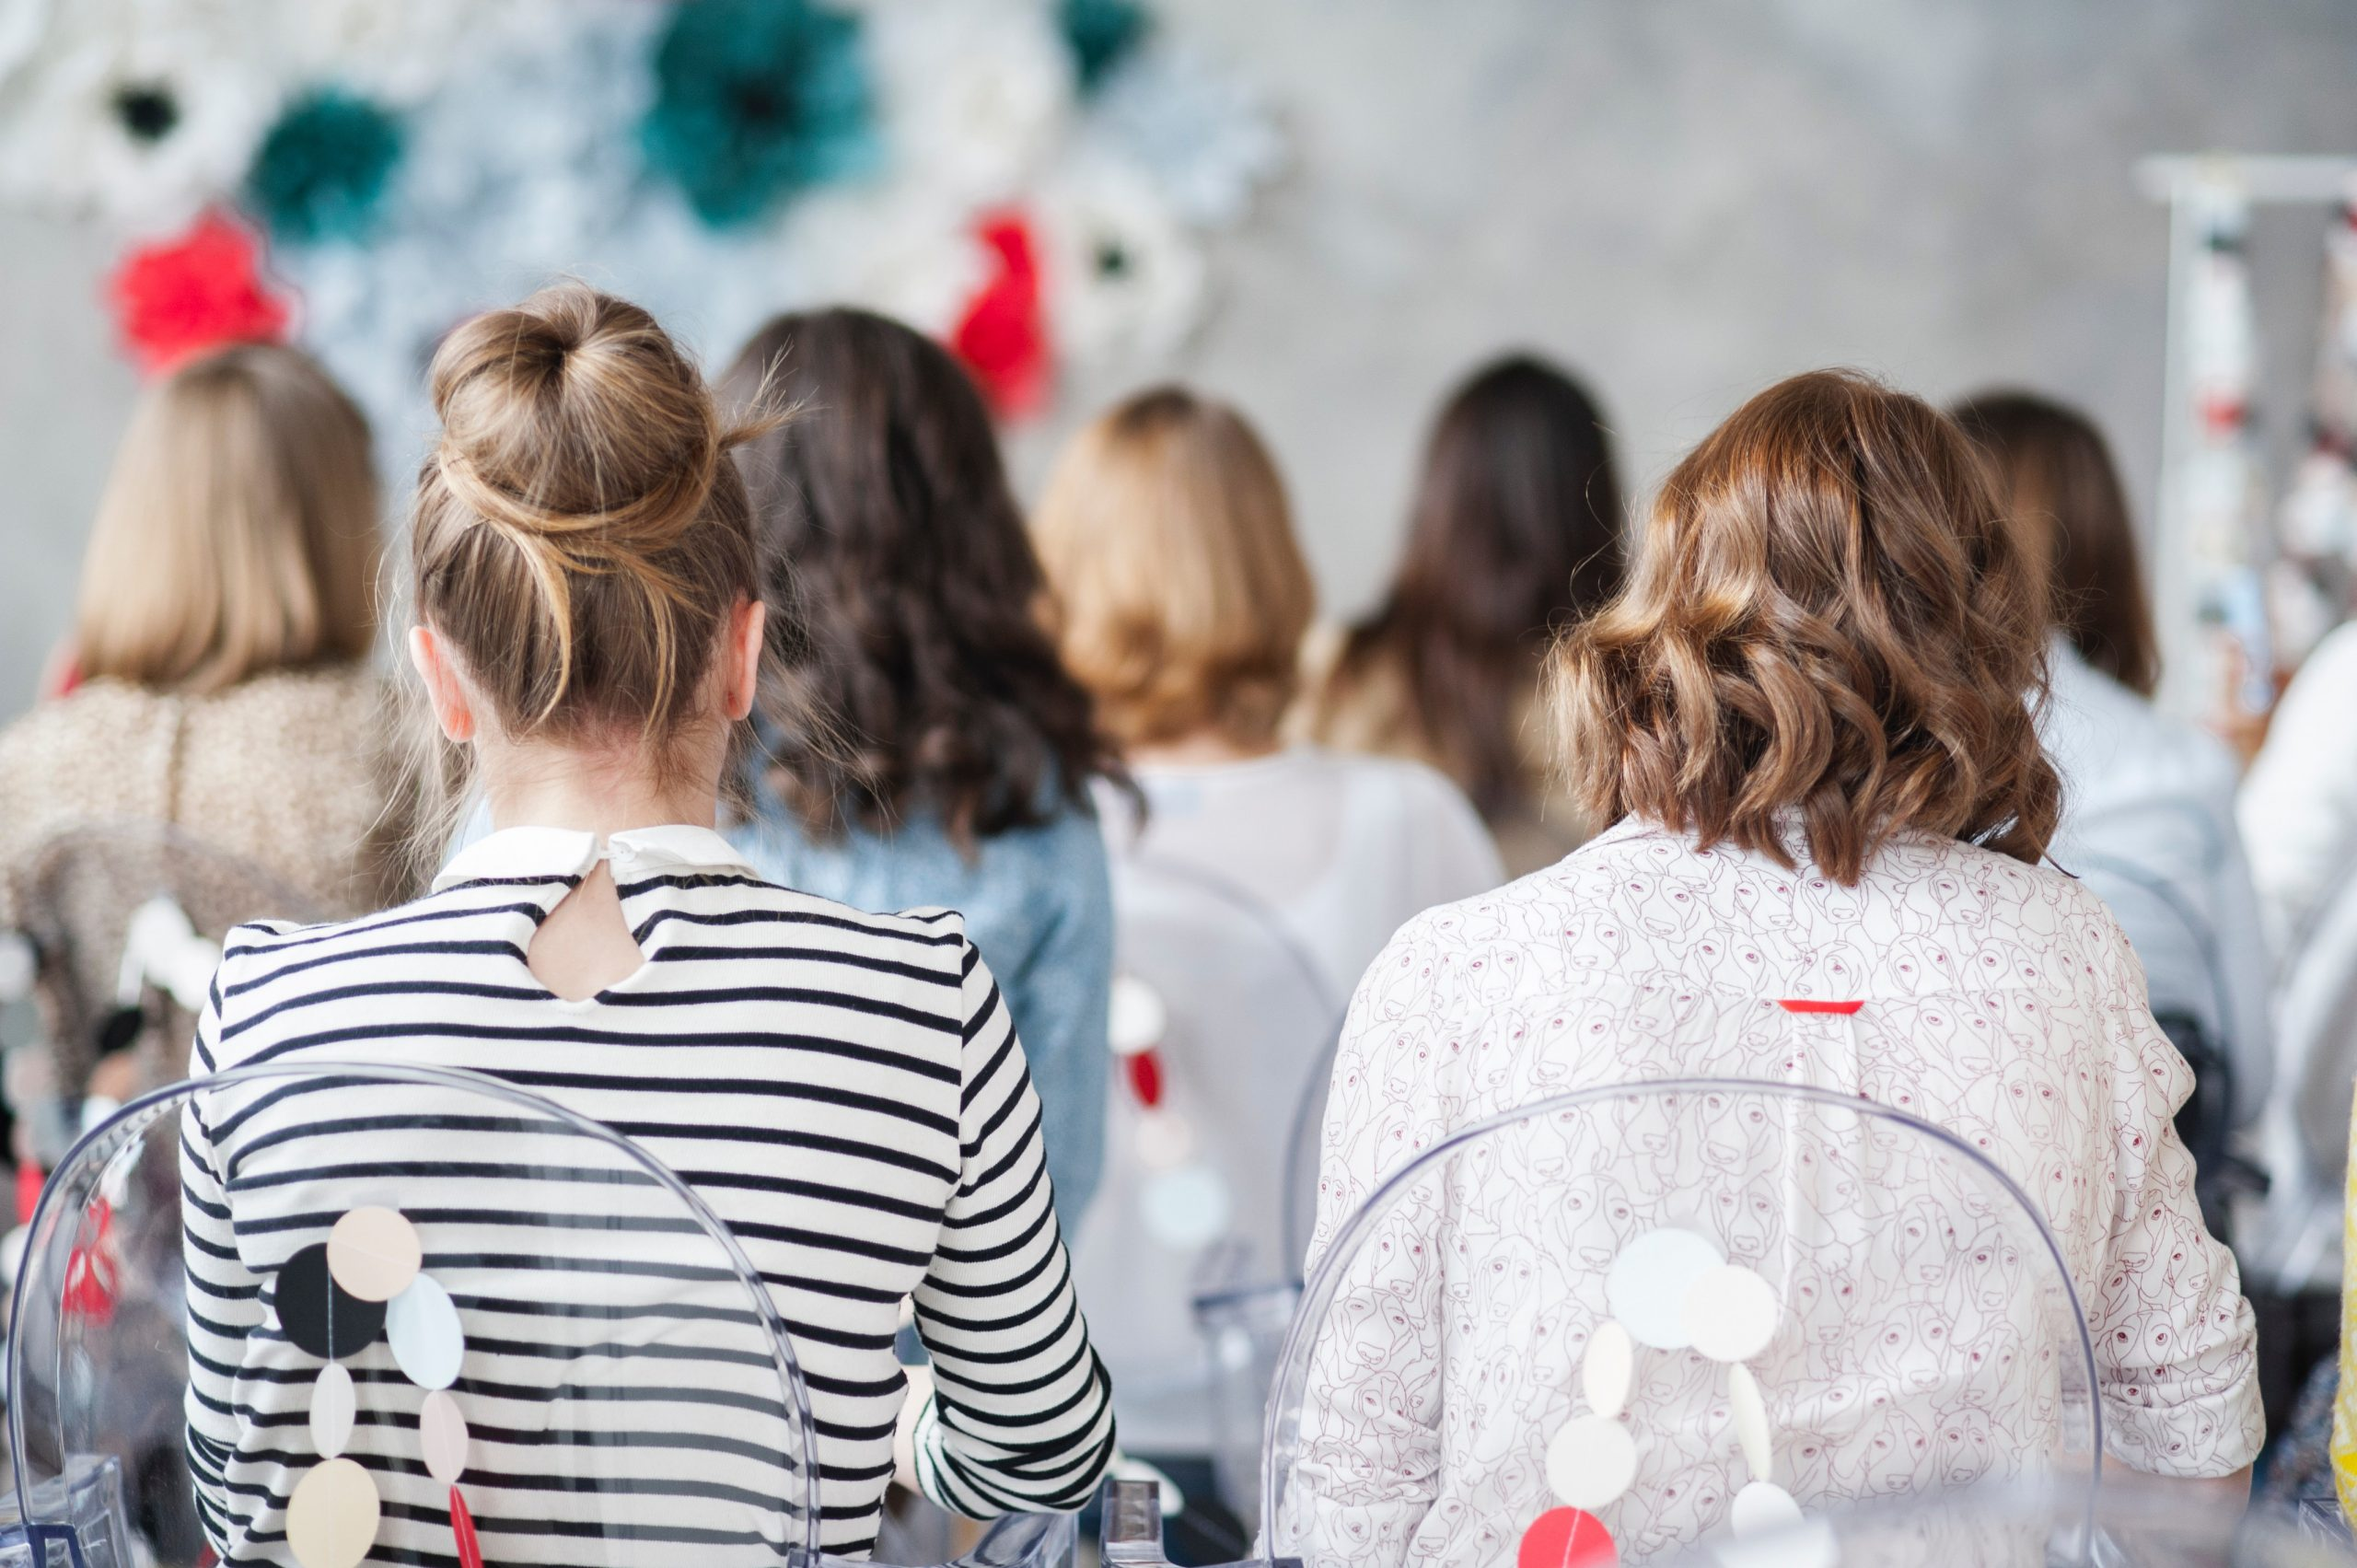 The Four Ways to Run a Fundraising Event Post COVID-19